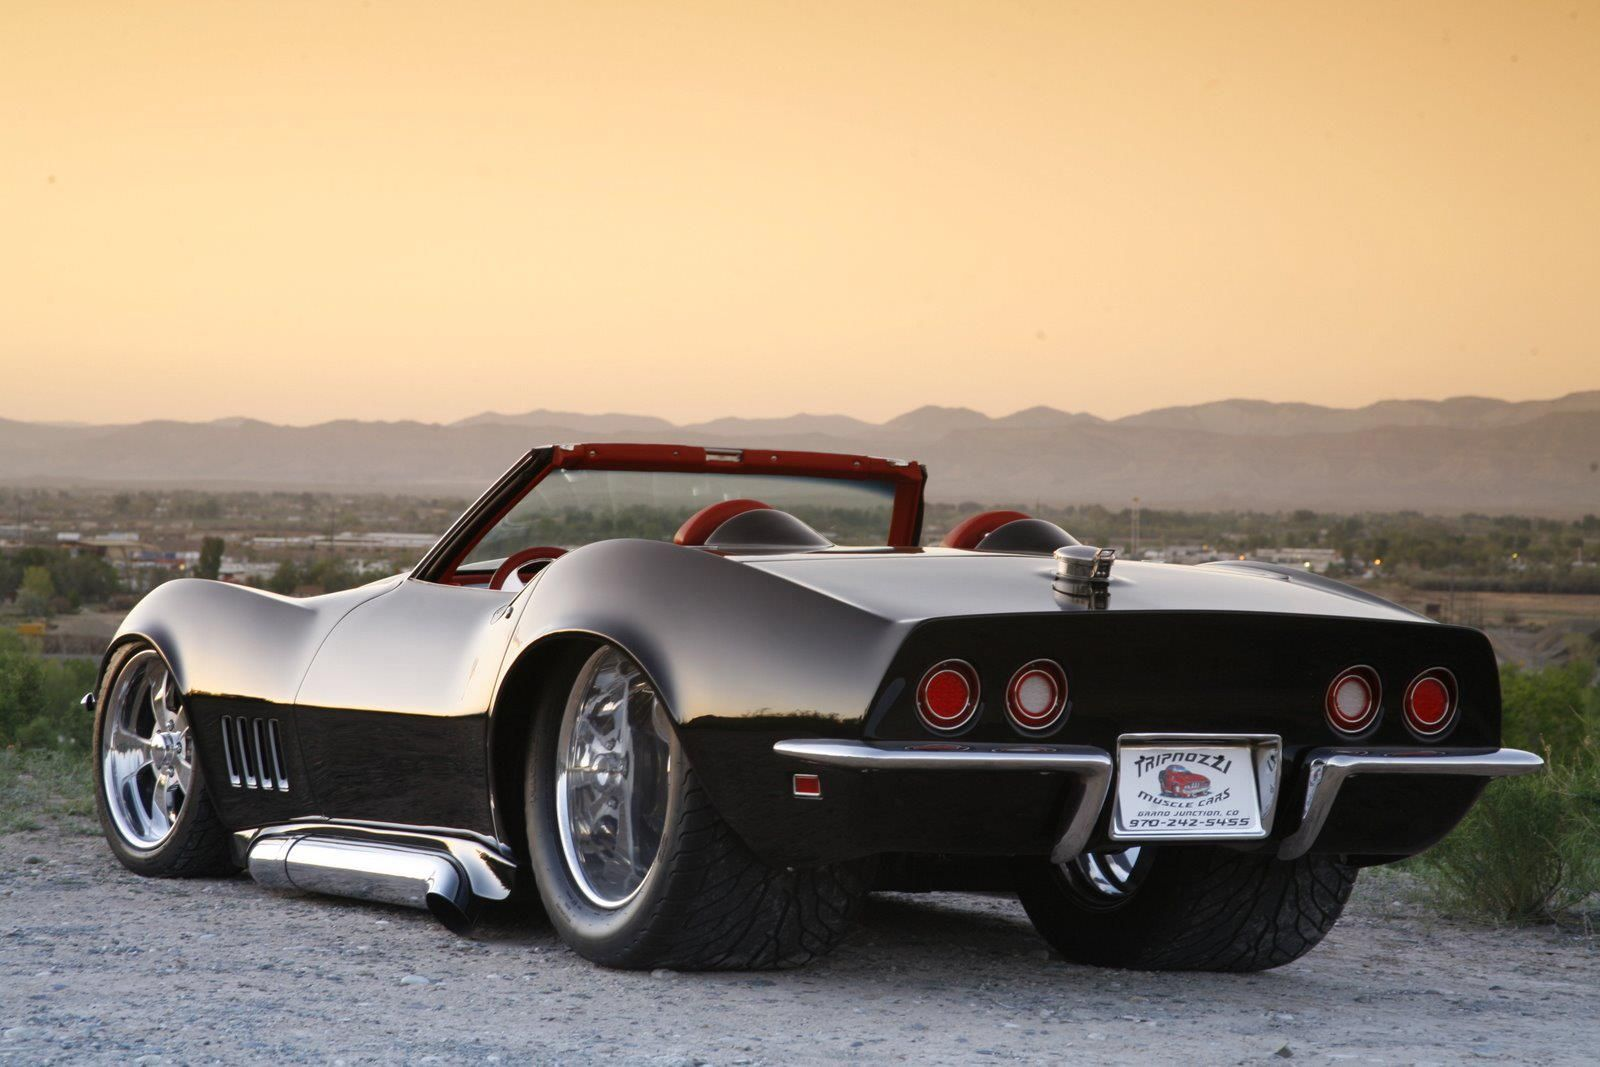 Extremely low Chevrolet Corvette C-3 with sidepipes and ...